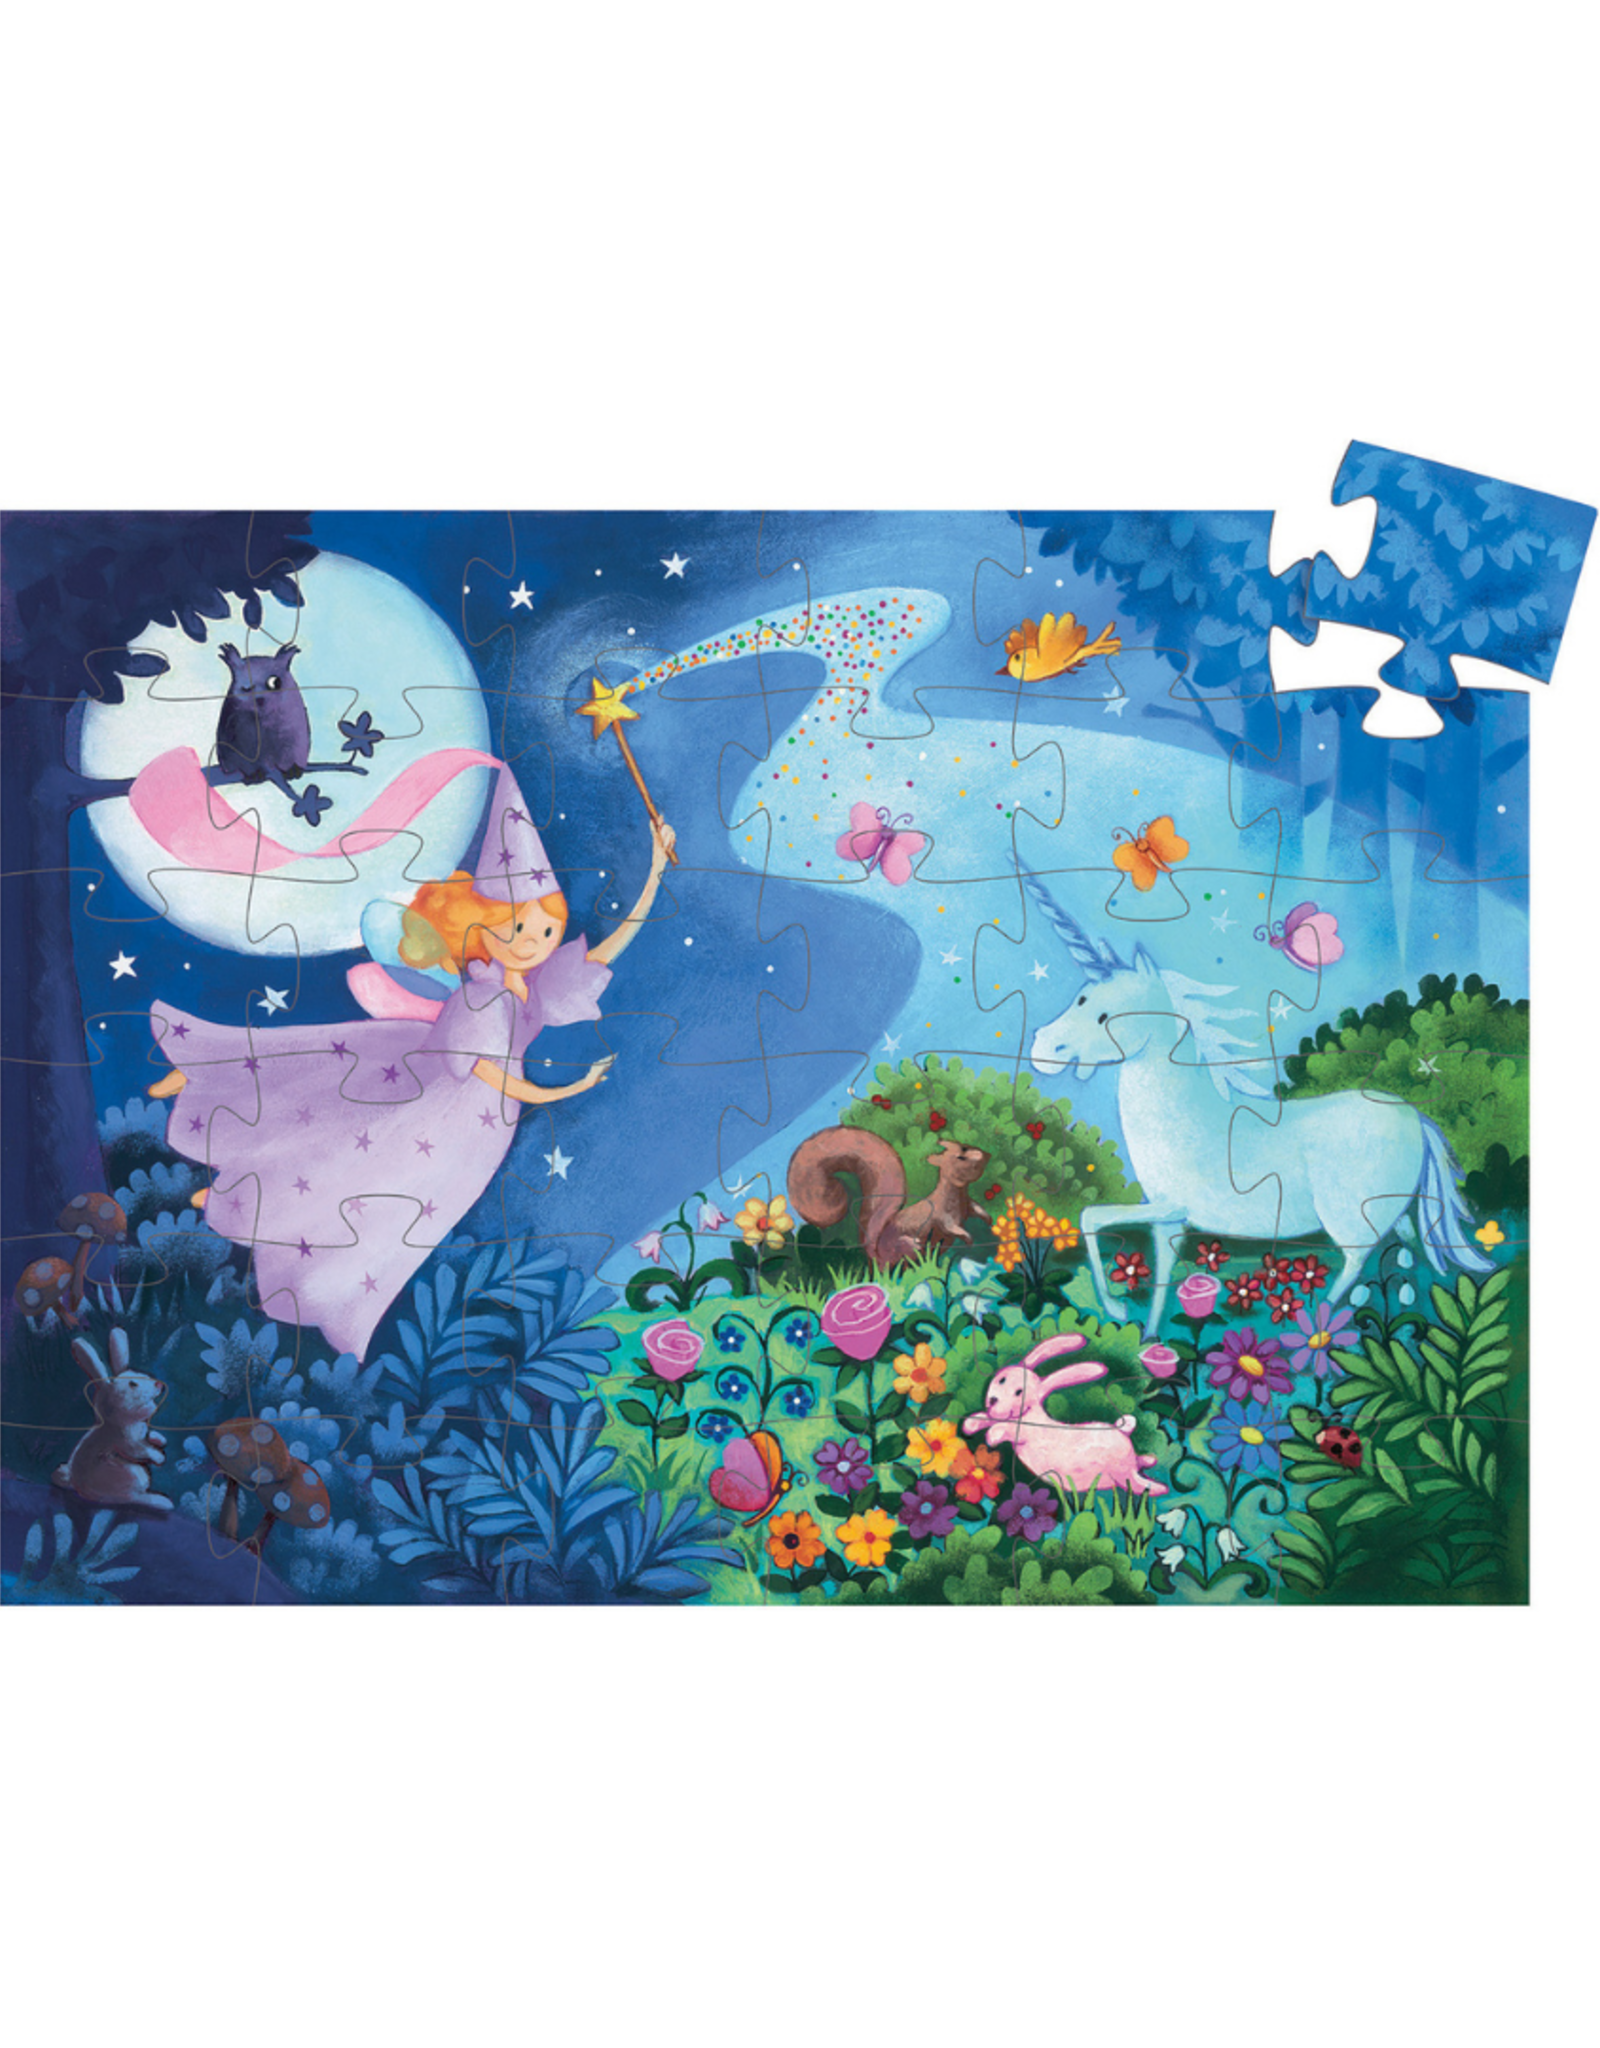 Djeco Silhouette Puzzle 36pc - The Fairy and the Unicorn